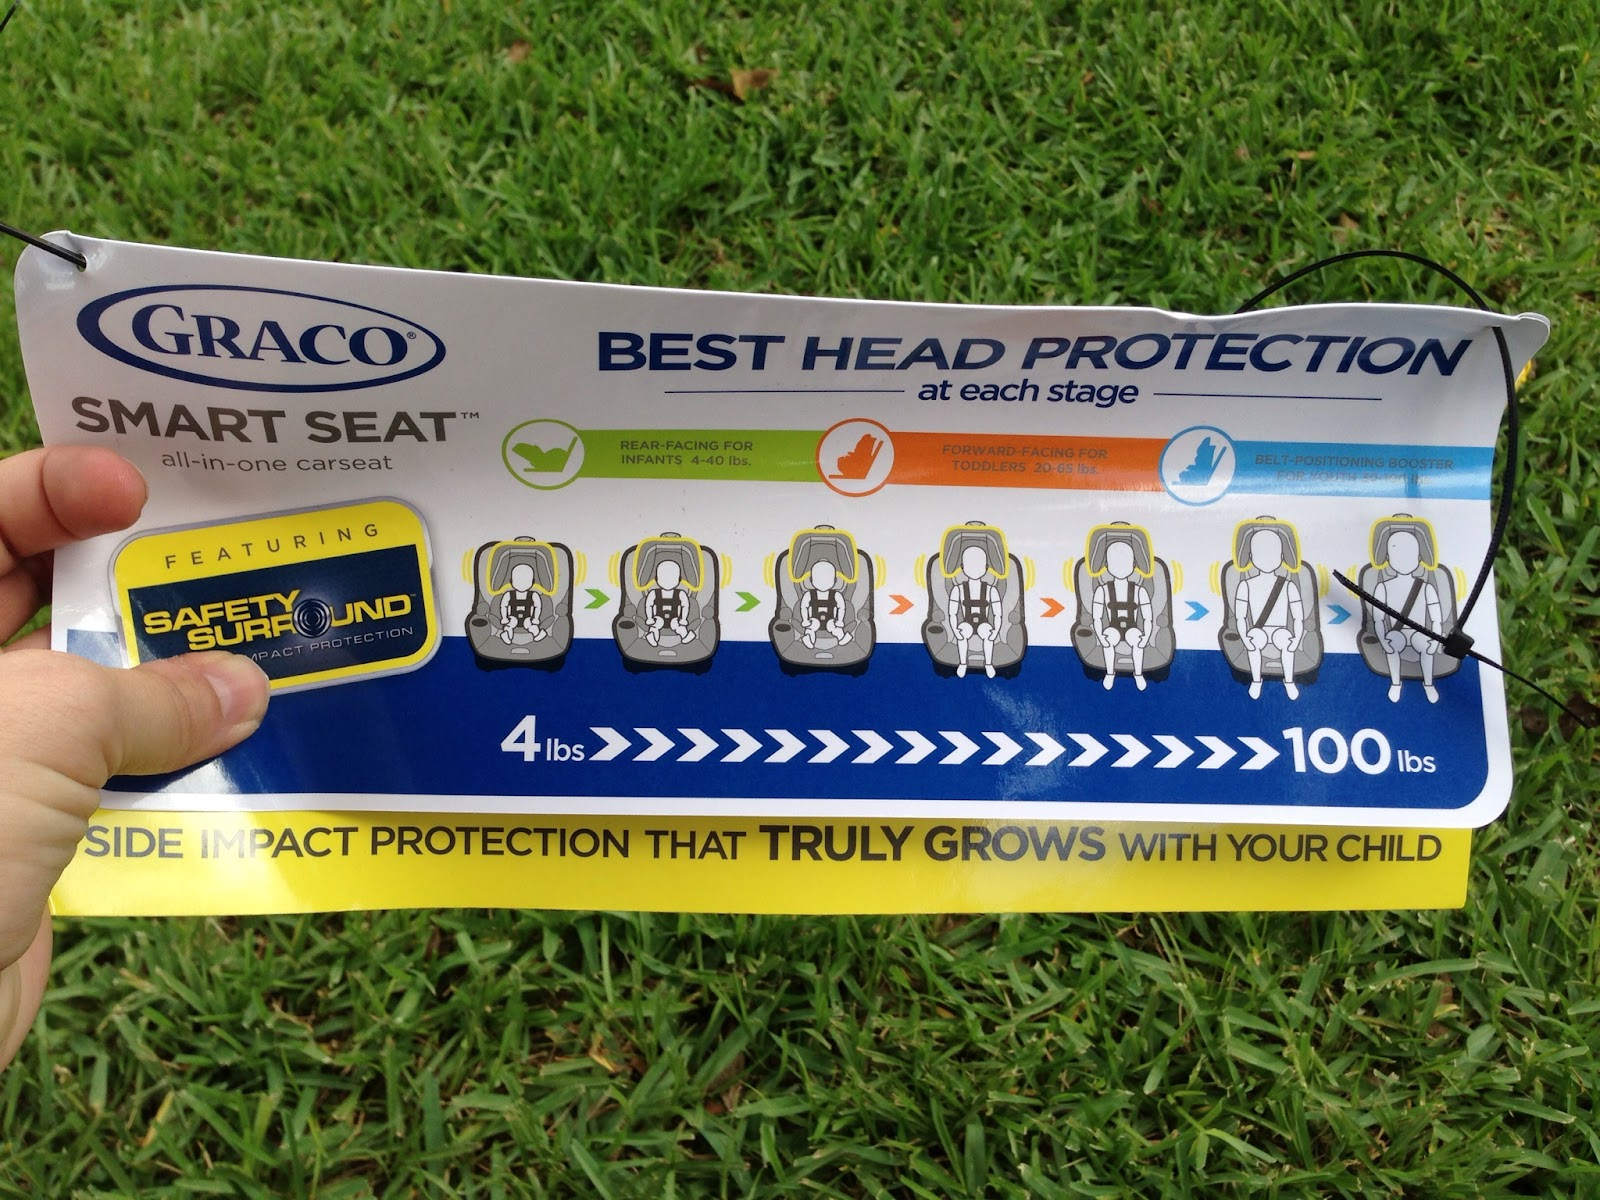 The Smart SeatTM Is An All In One Car Seat Providing Ultimate Longevity And Best Side Impact Protection For Every Stage